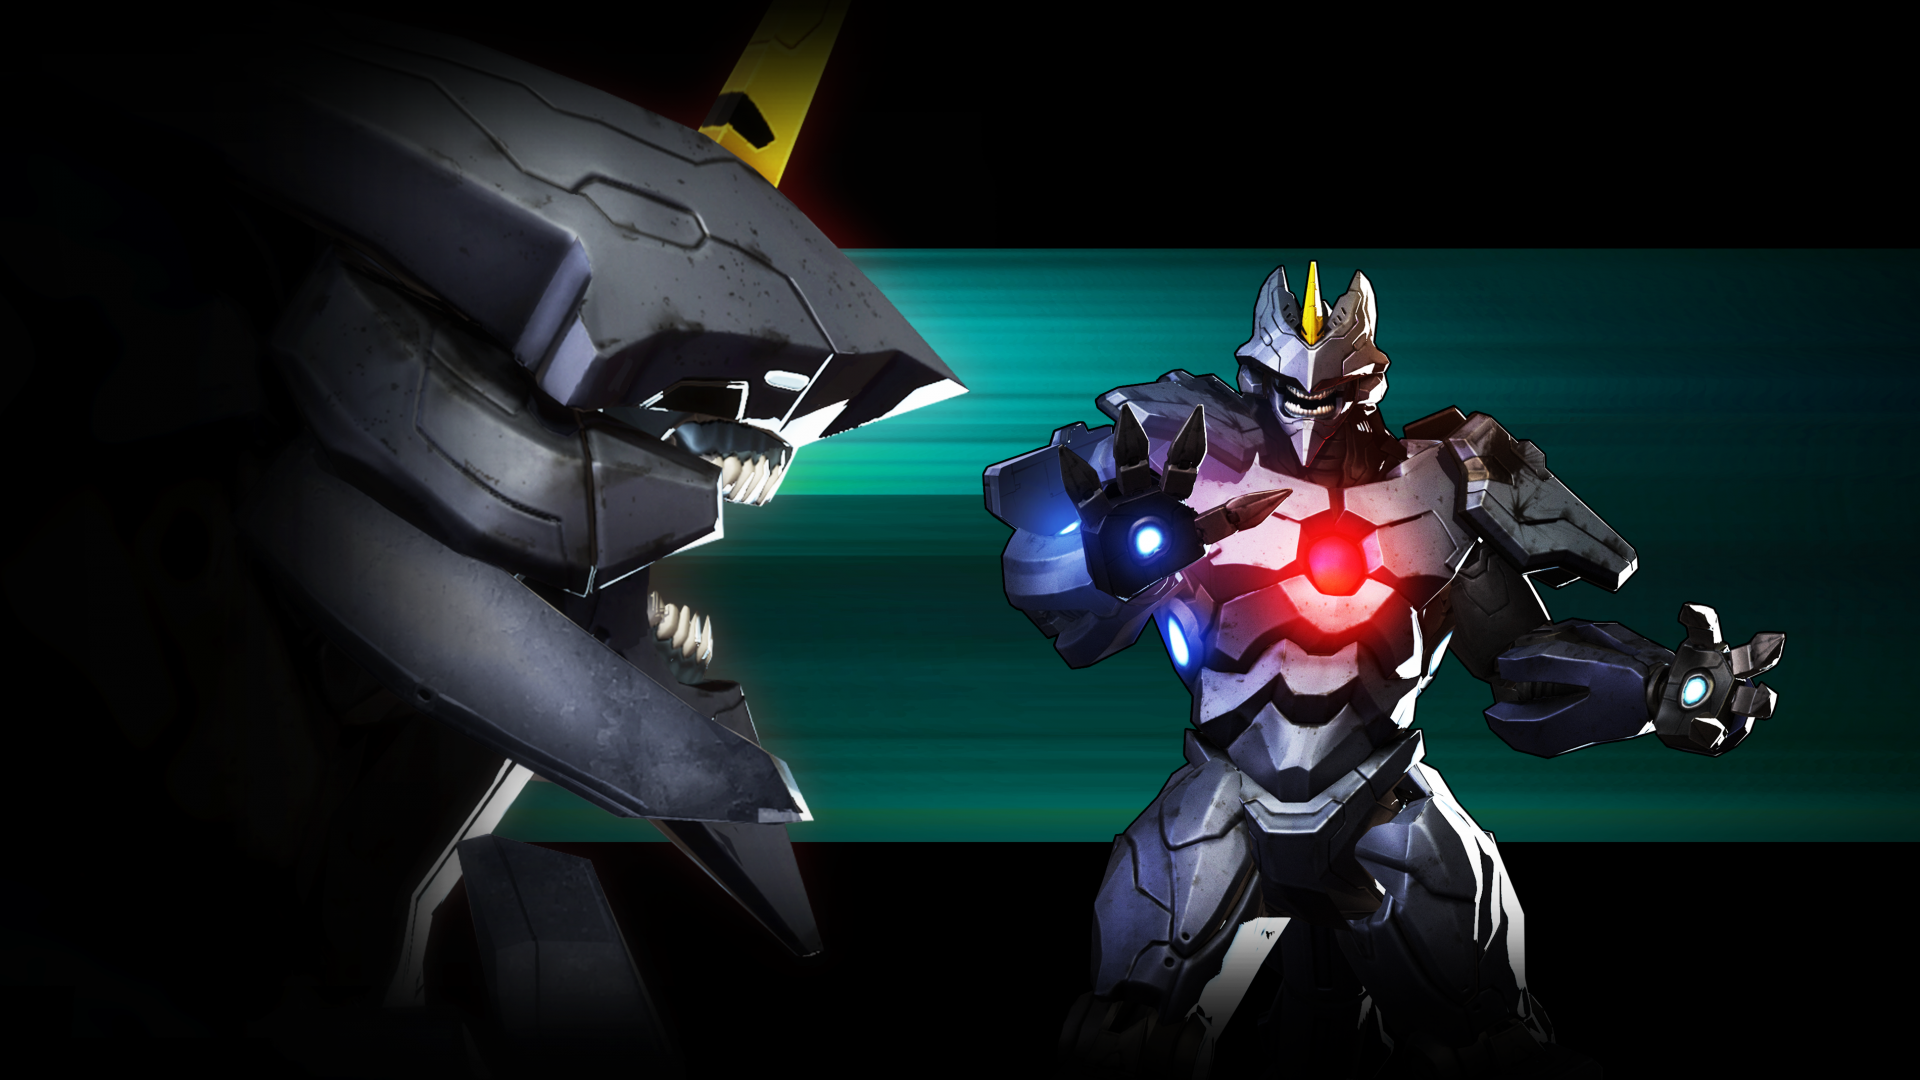 Power Rangers Black Dragon Mighty Morphin Power Rangers I don't think that should be possible unless the dragon wasn't played to its full potential and/or they are power gamers and have really good items. power rangers legacy wars